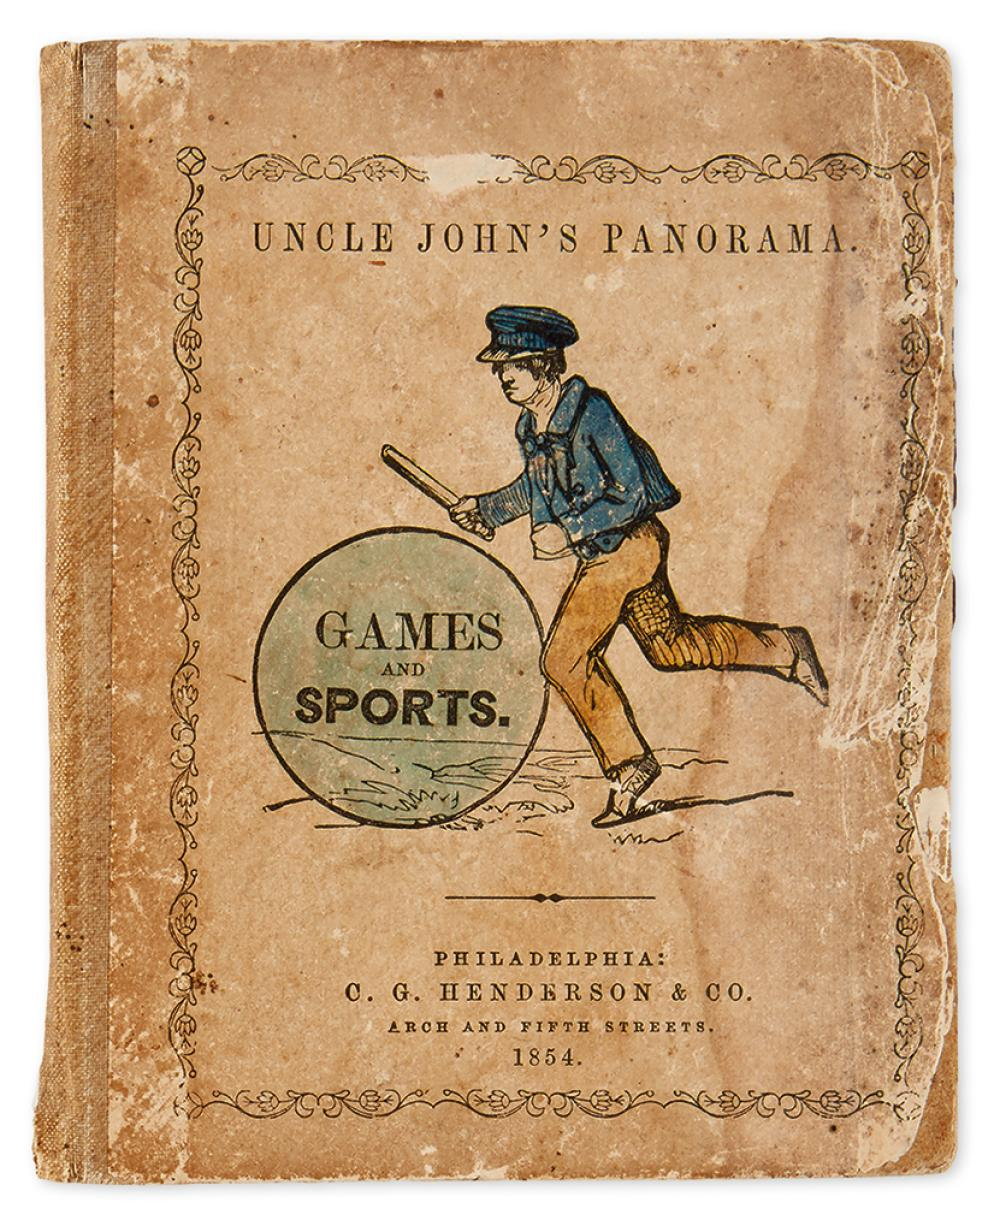 (JUVENILE - GAMES.) Uncle John''s Panorama. Games and Sports.